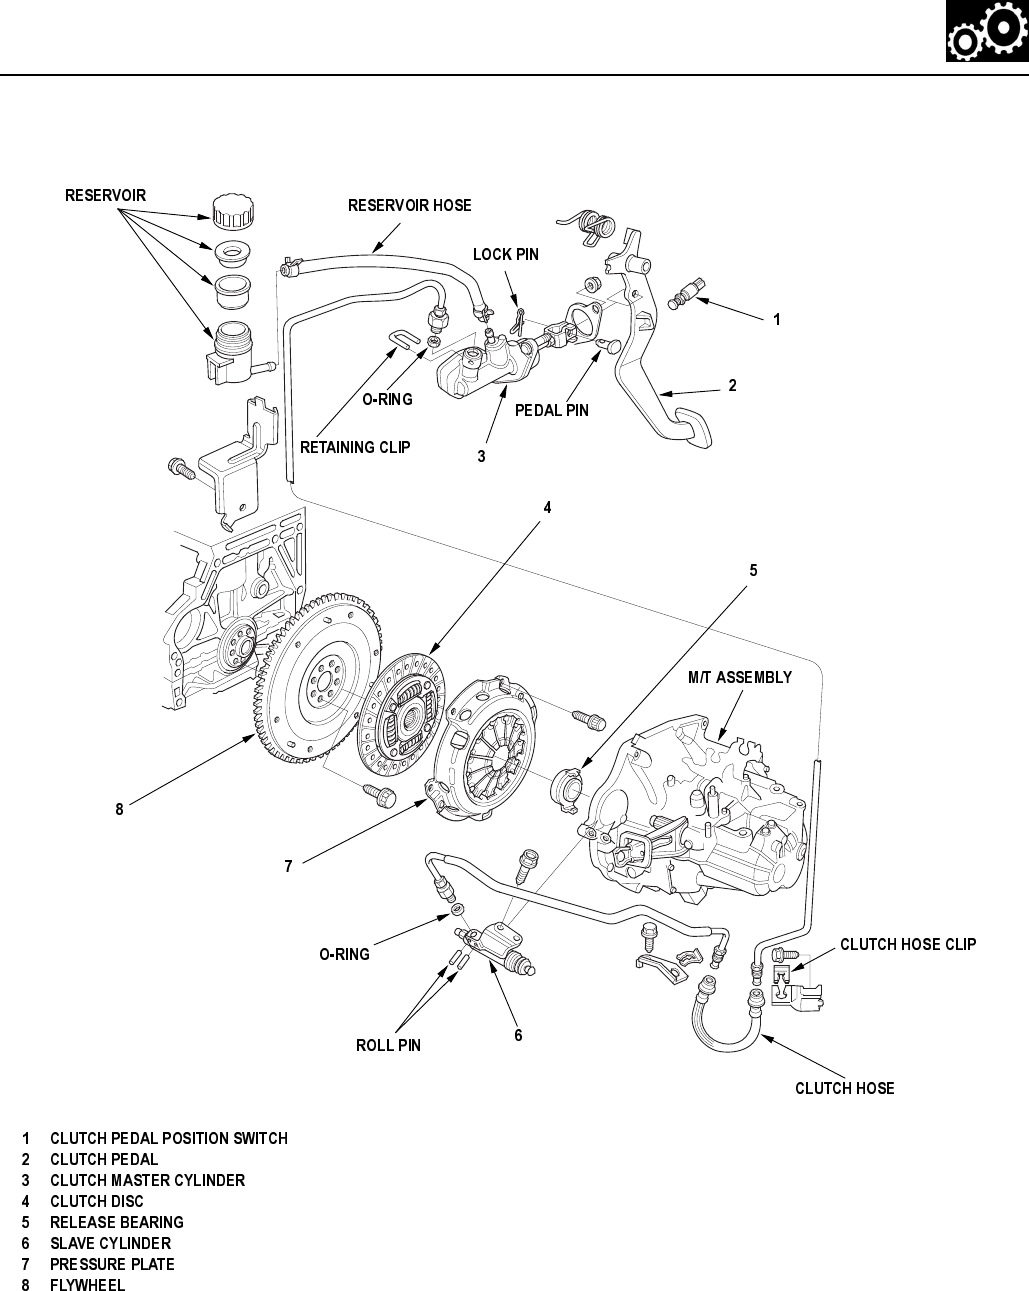 Honda CRV Shop Manual 1997 2002 (12) PDF